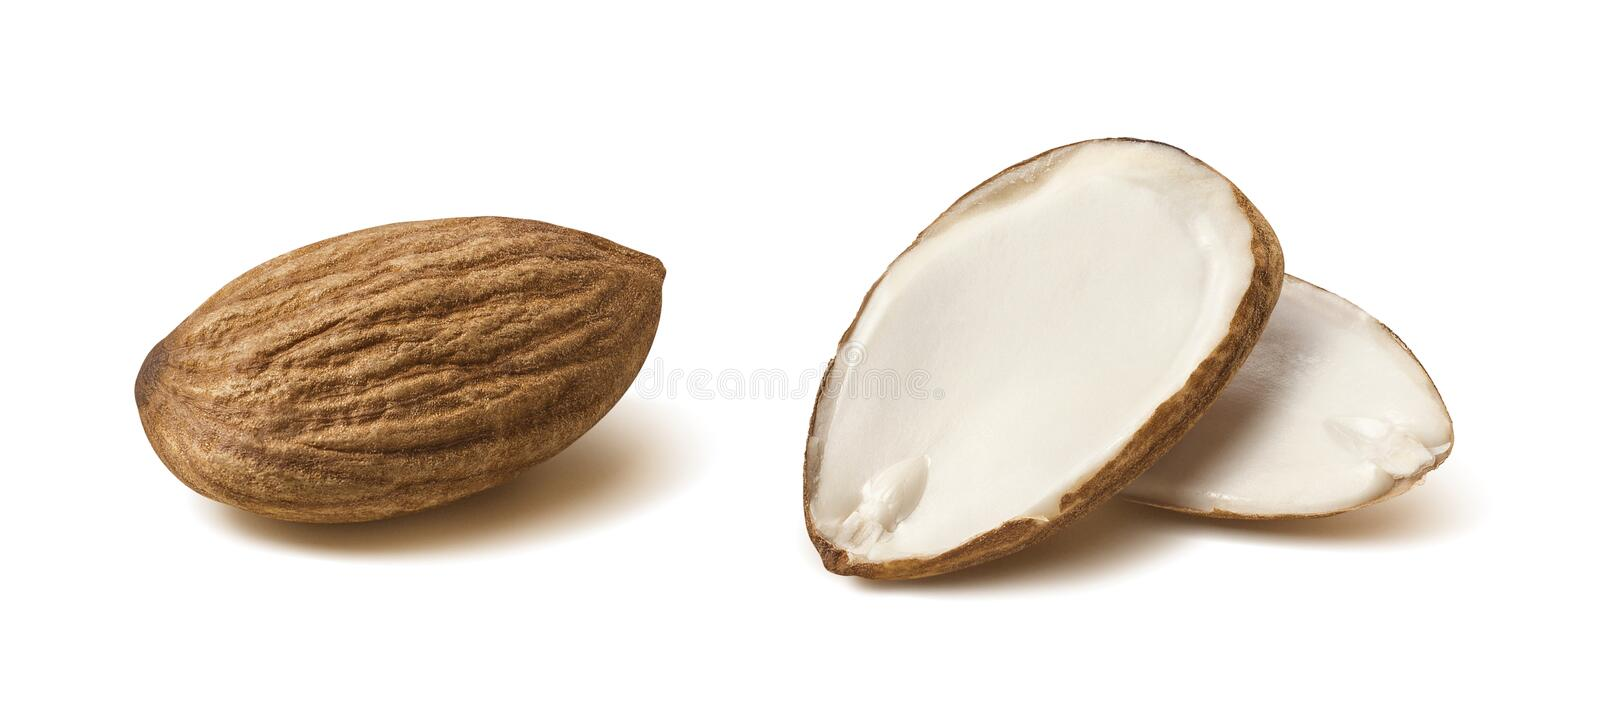 Double almond nut half isolated on white background. Double almond nut half slice isolated on white background as package design element stock photo